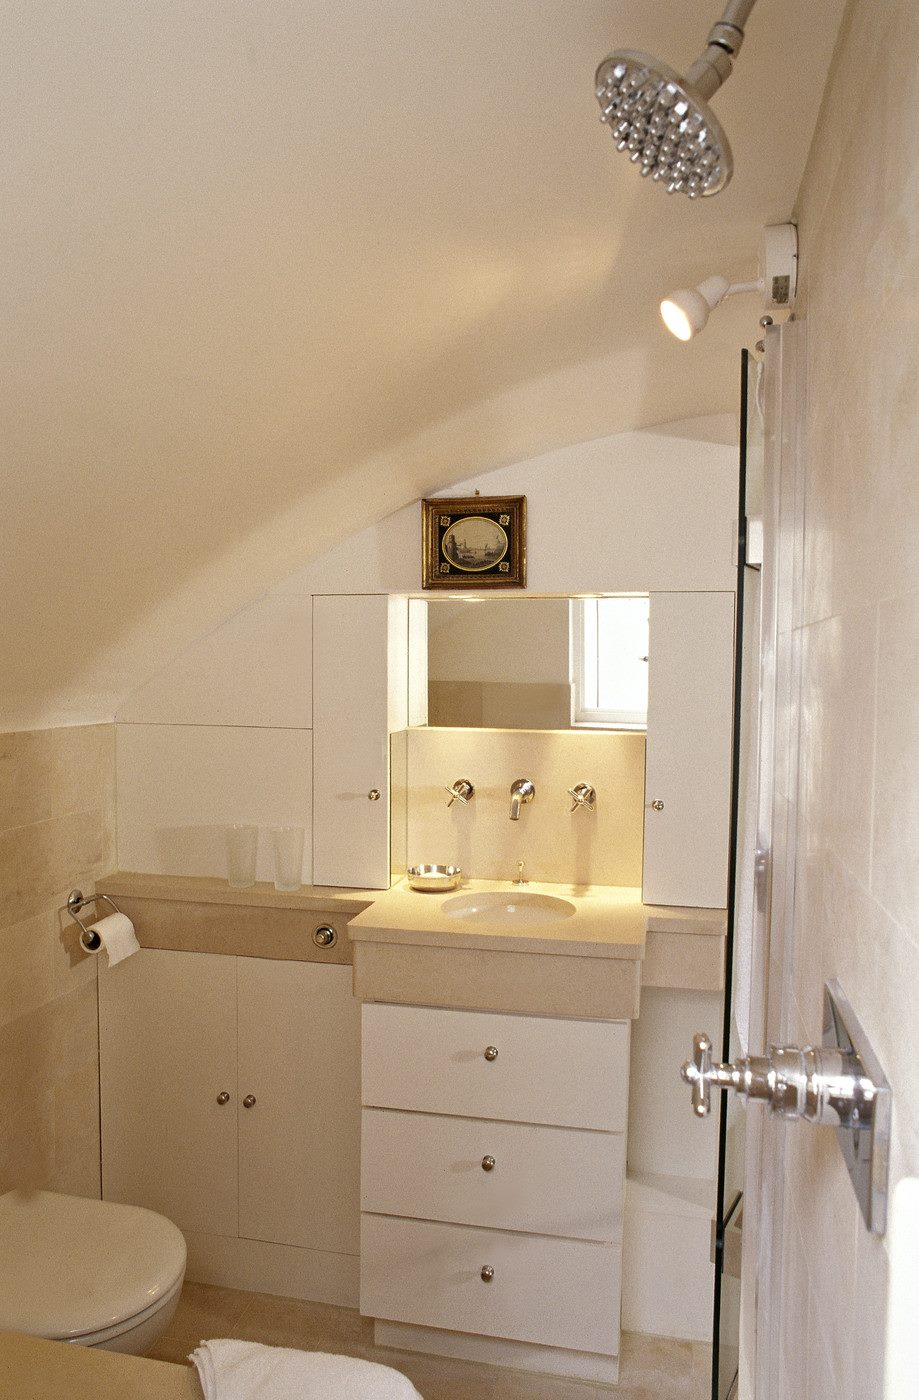 White bathroom with a wall-mounted spotlight